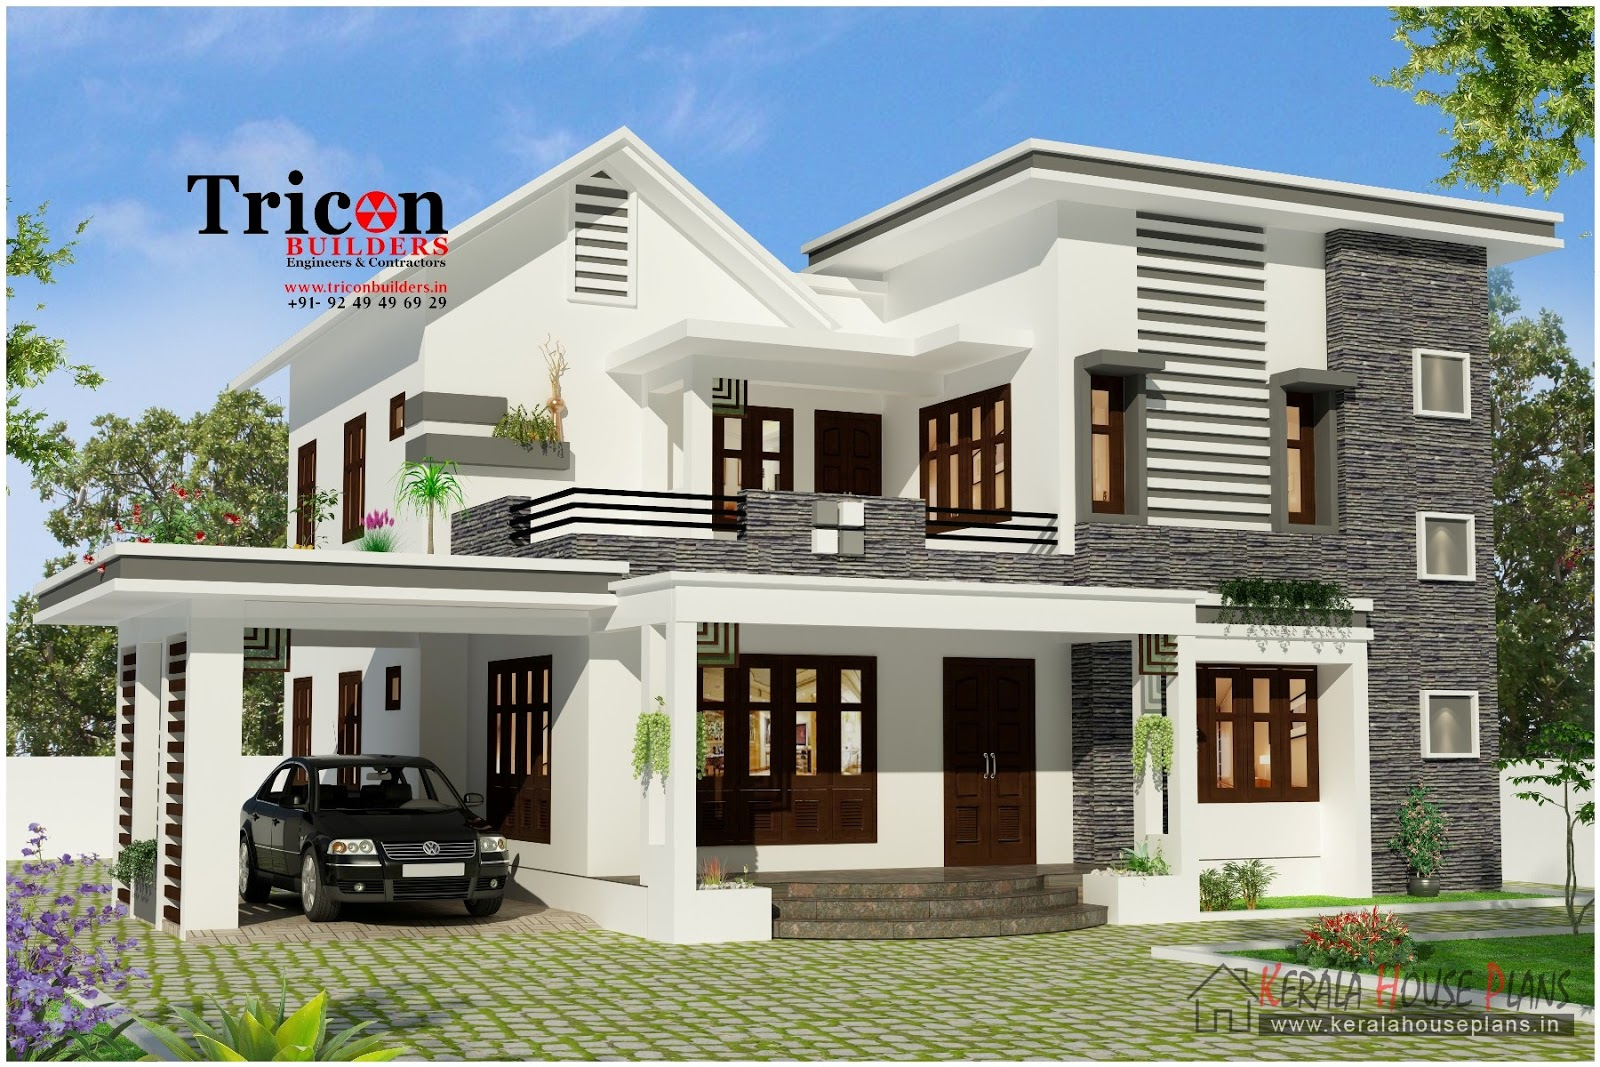 4 bedroom modern house design 2355 kerala house for Innovative house plans designs